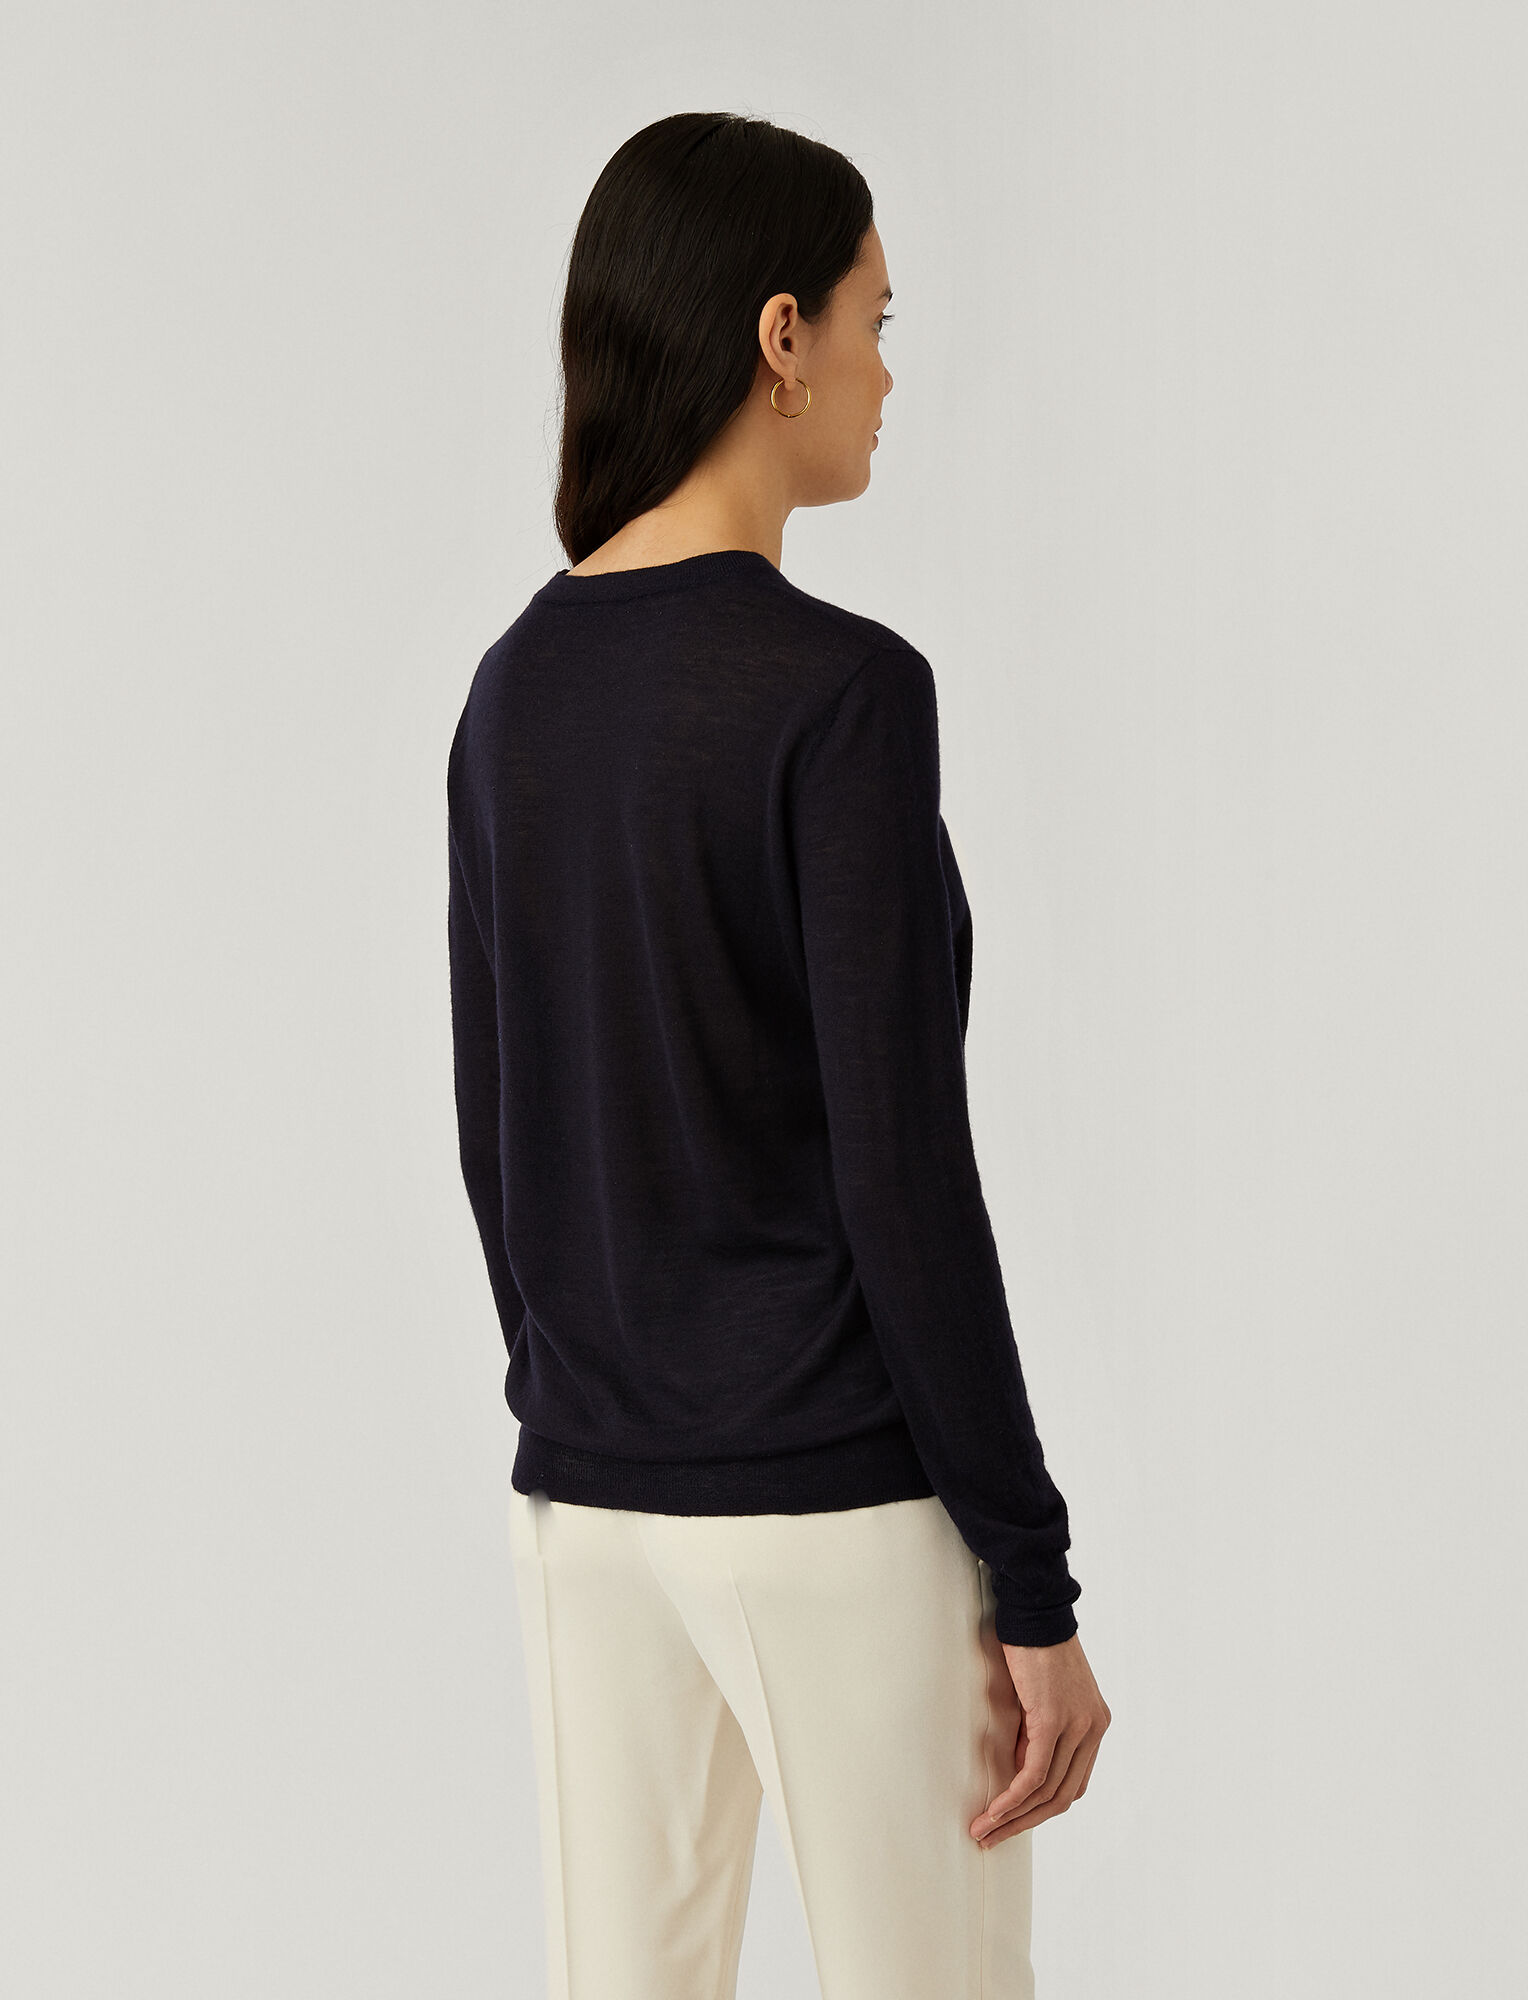 Joseph, Cashair Knit, in NAVY